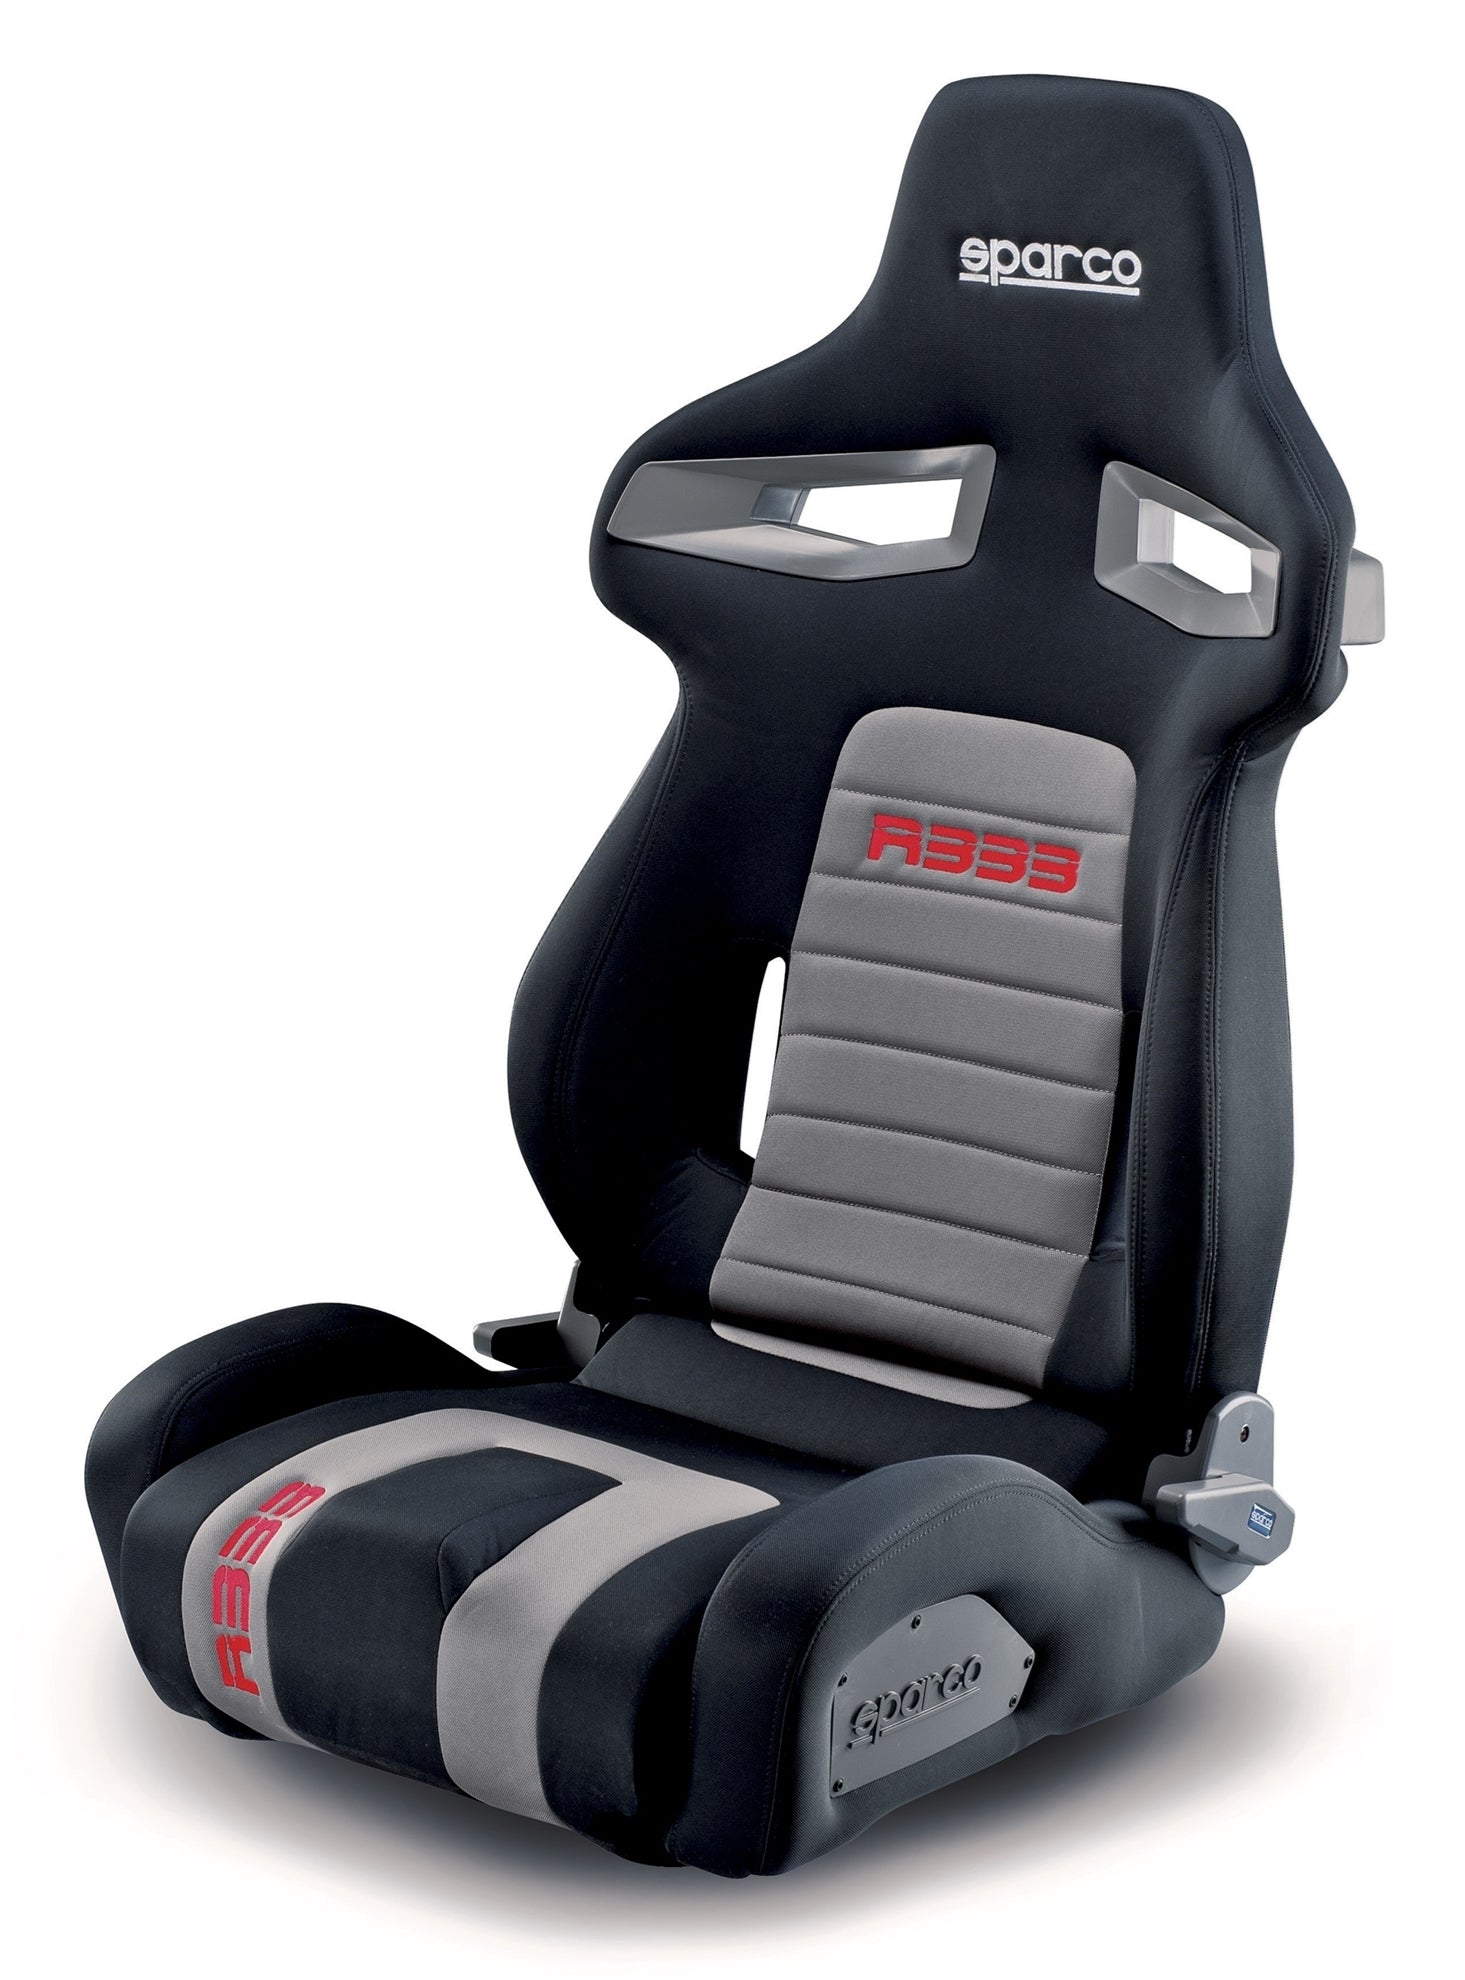 Sparco R333 Bucket Seat